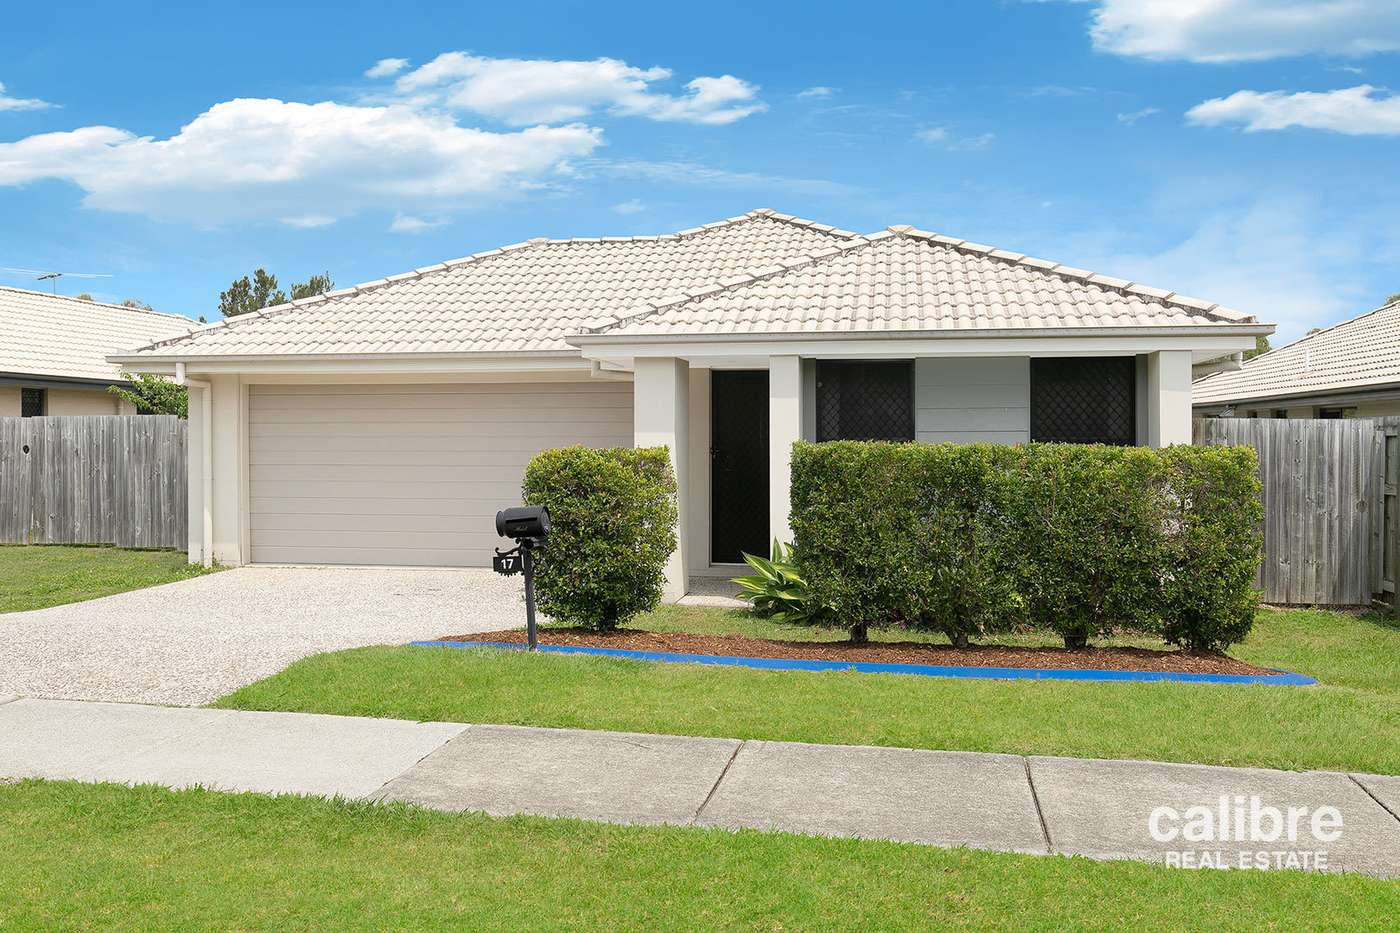 Main view of Homely house listing, 17 Desmond Street, Narangba, QLD 4504